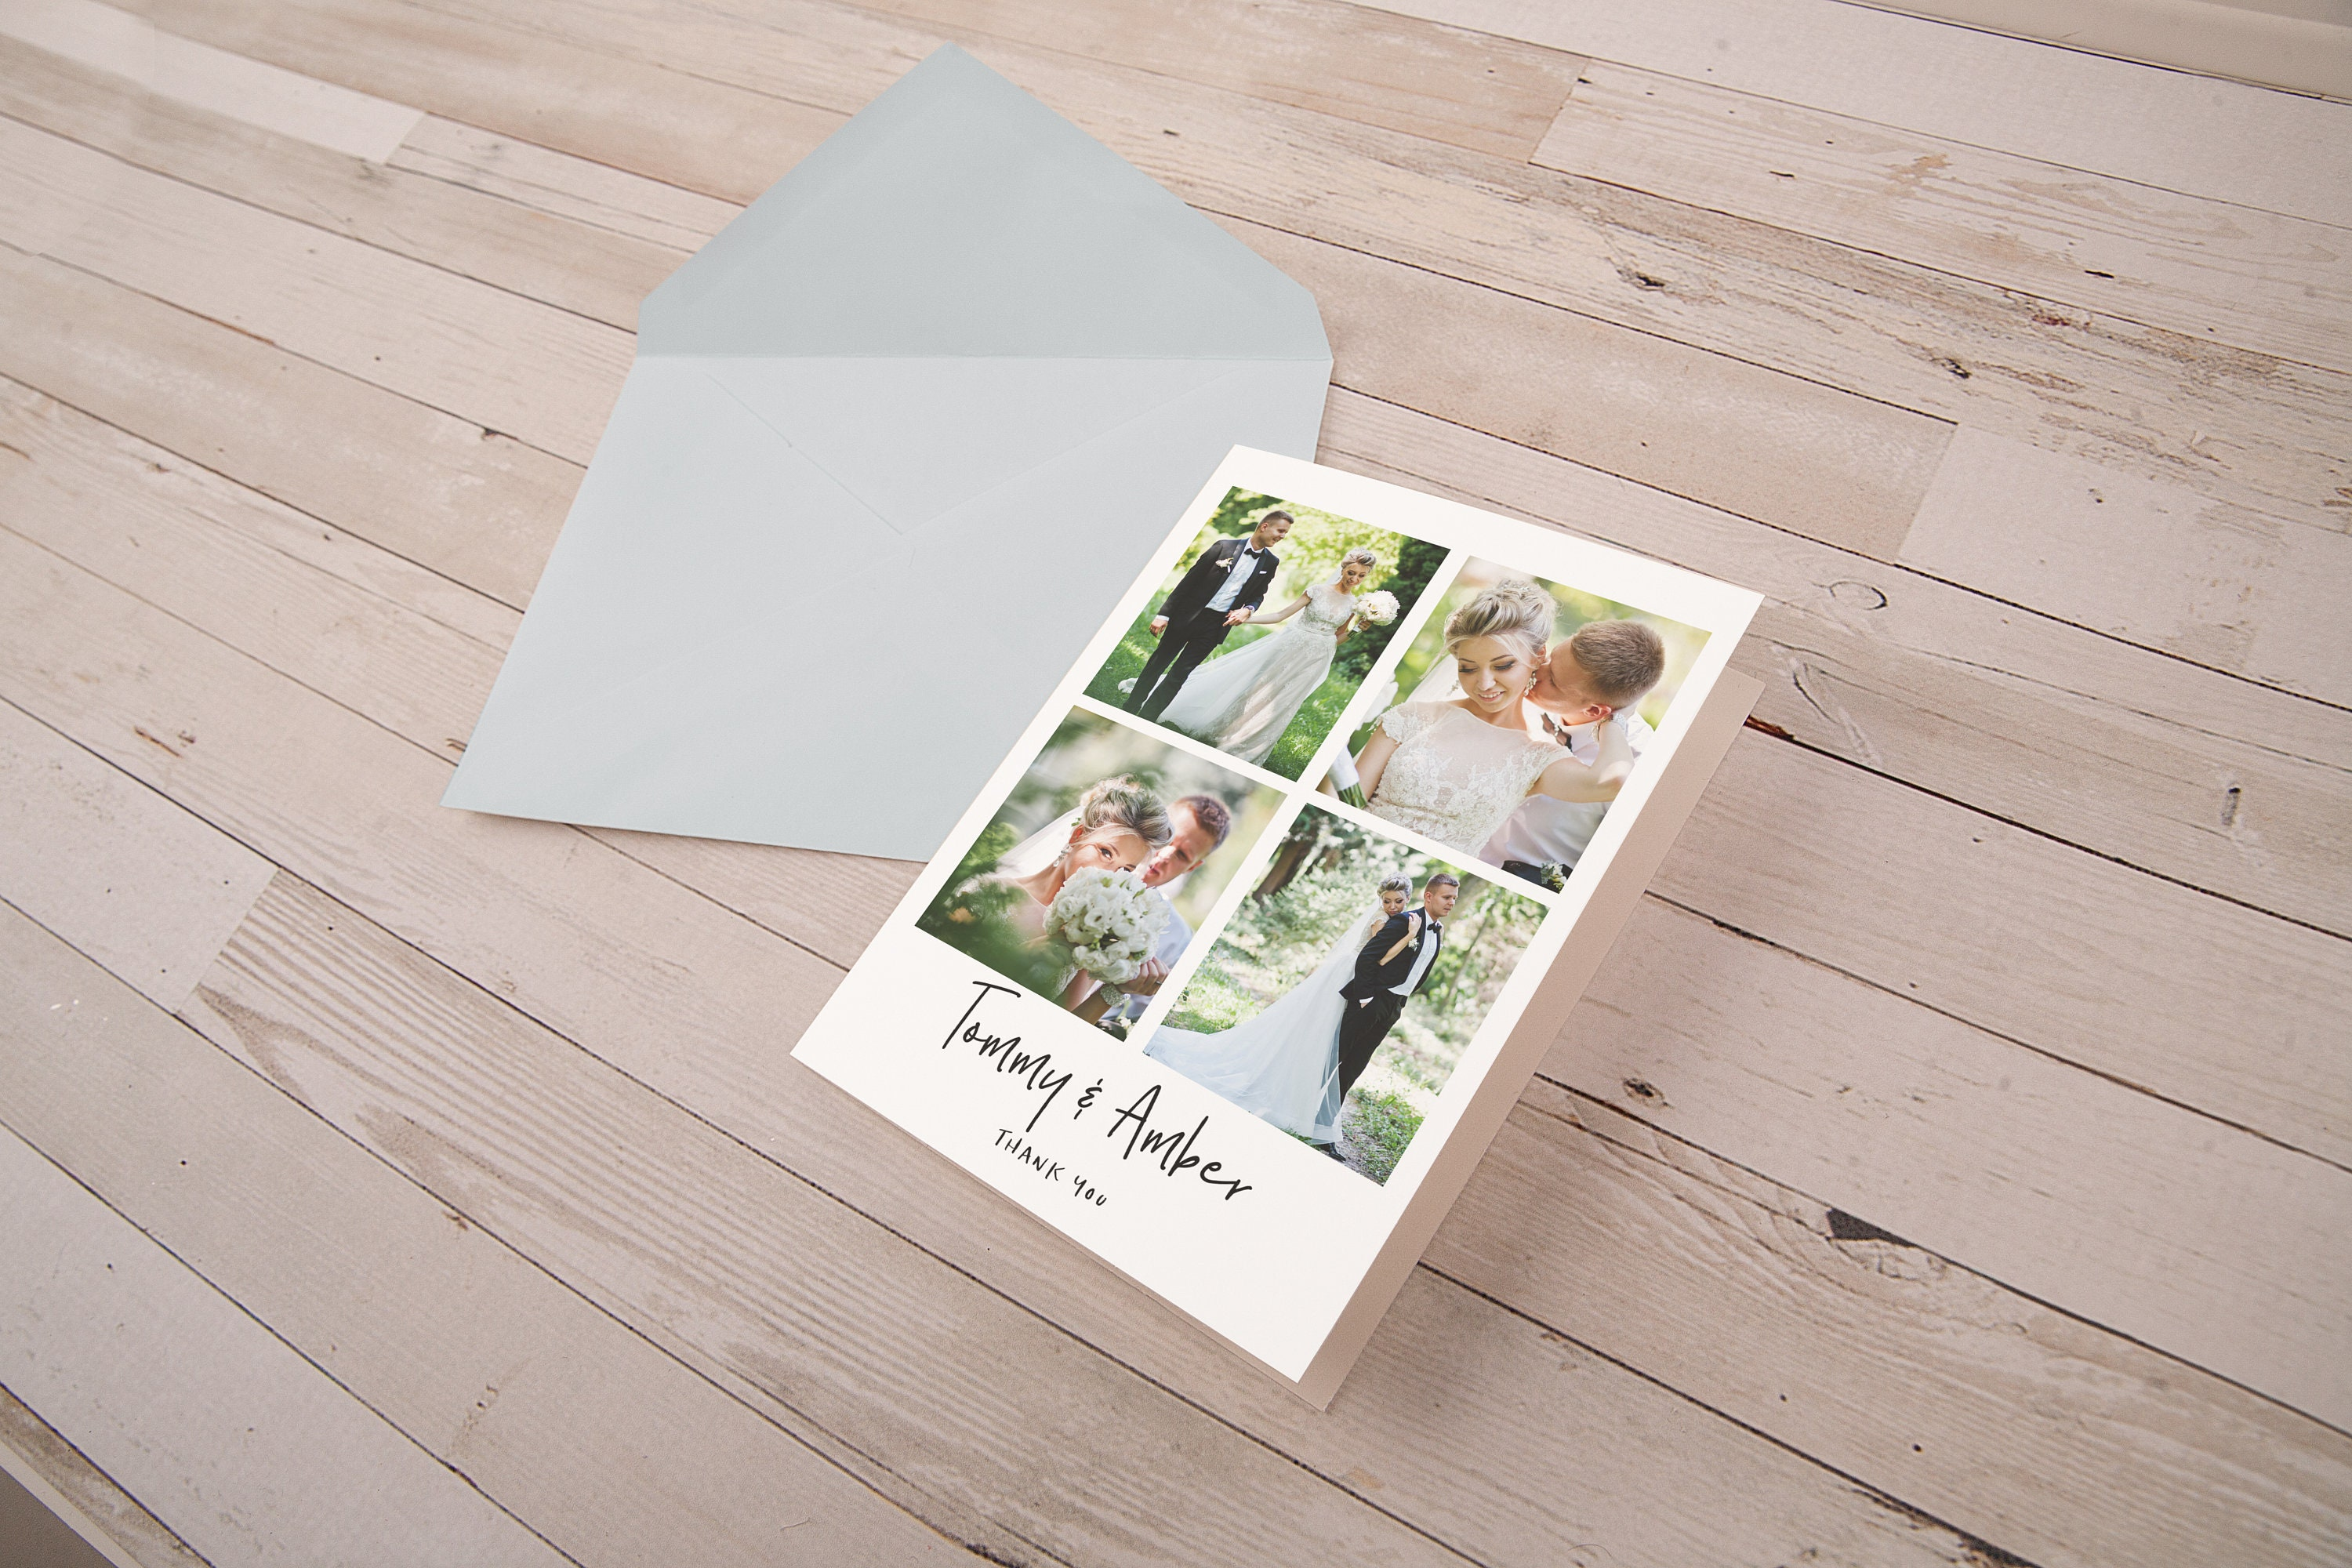 Personalized folded note cards with envelopes blank note card set personalized folded note cards with envelopes blank note card set thank you note cards wedding thank you notes shower greeting cards kristyandbryce Images